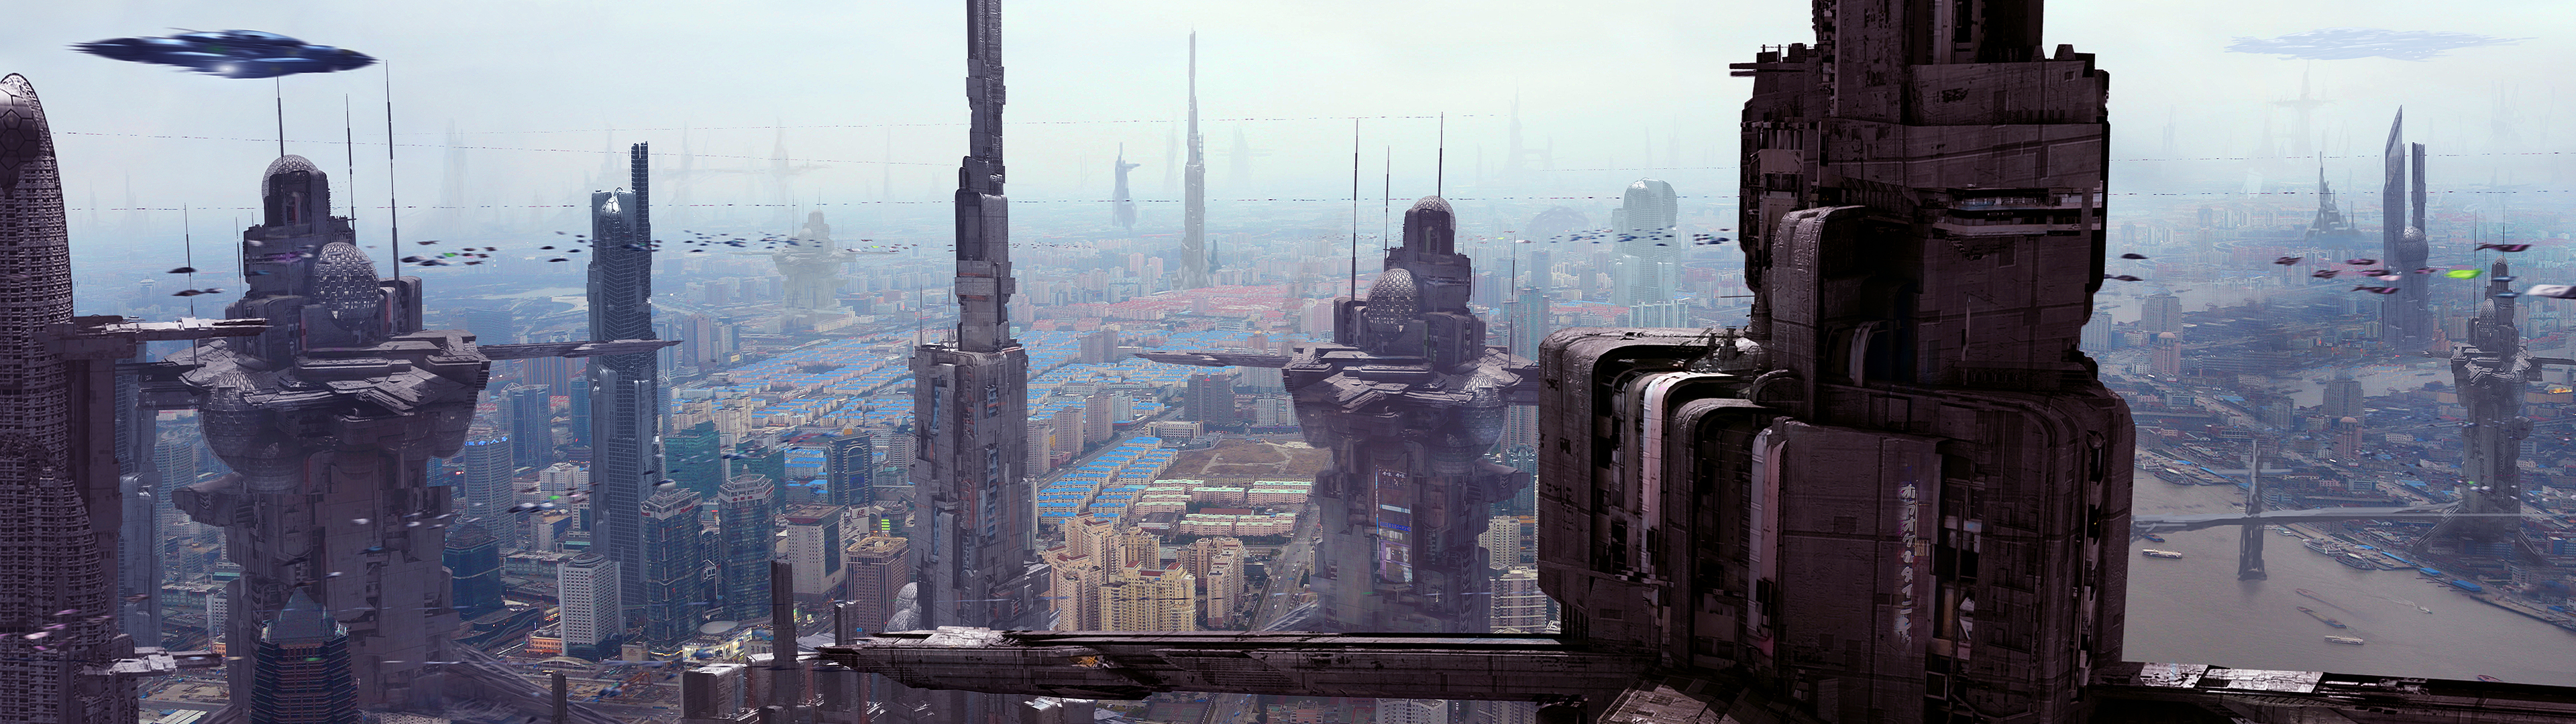 Futuristic City 6 by Scott Richard Dual Screen by rich35211